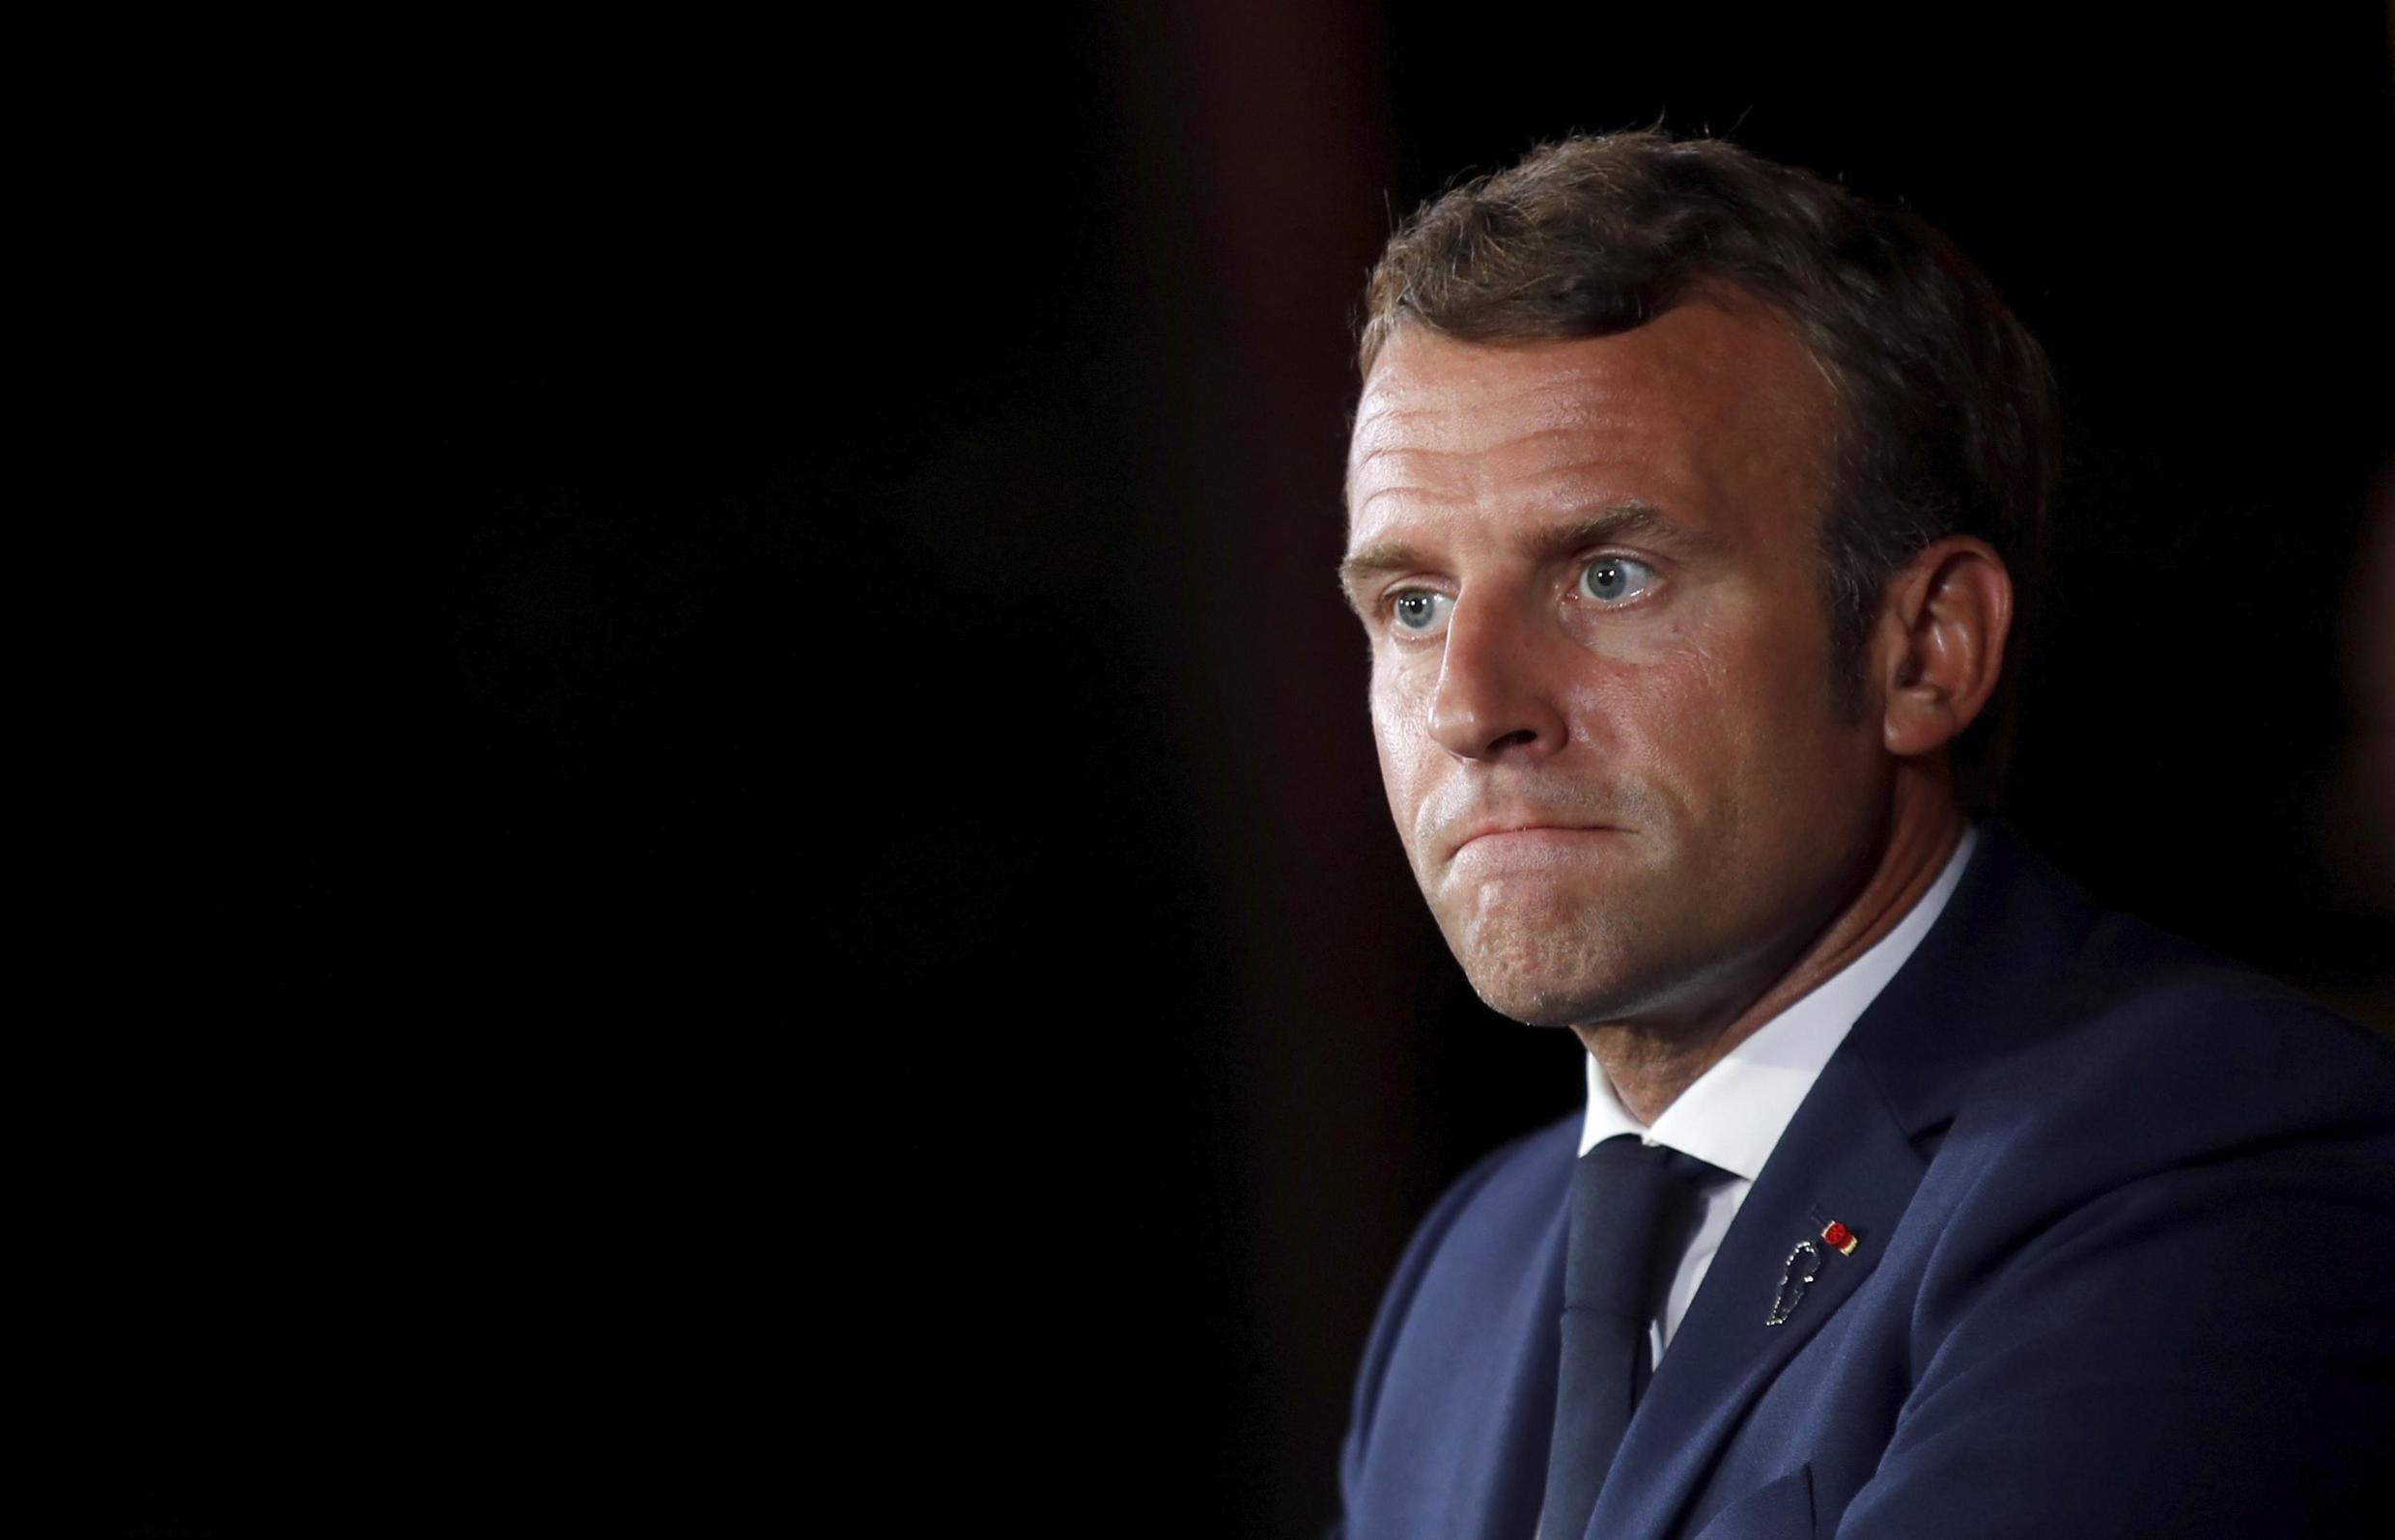 French President Emmanuel Macron at a press conference in Beirut, 1 September 2020.